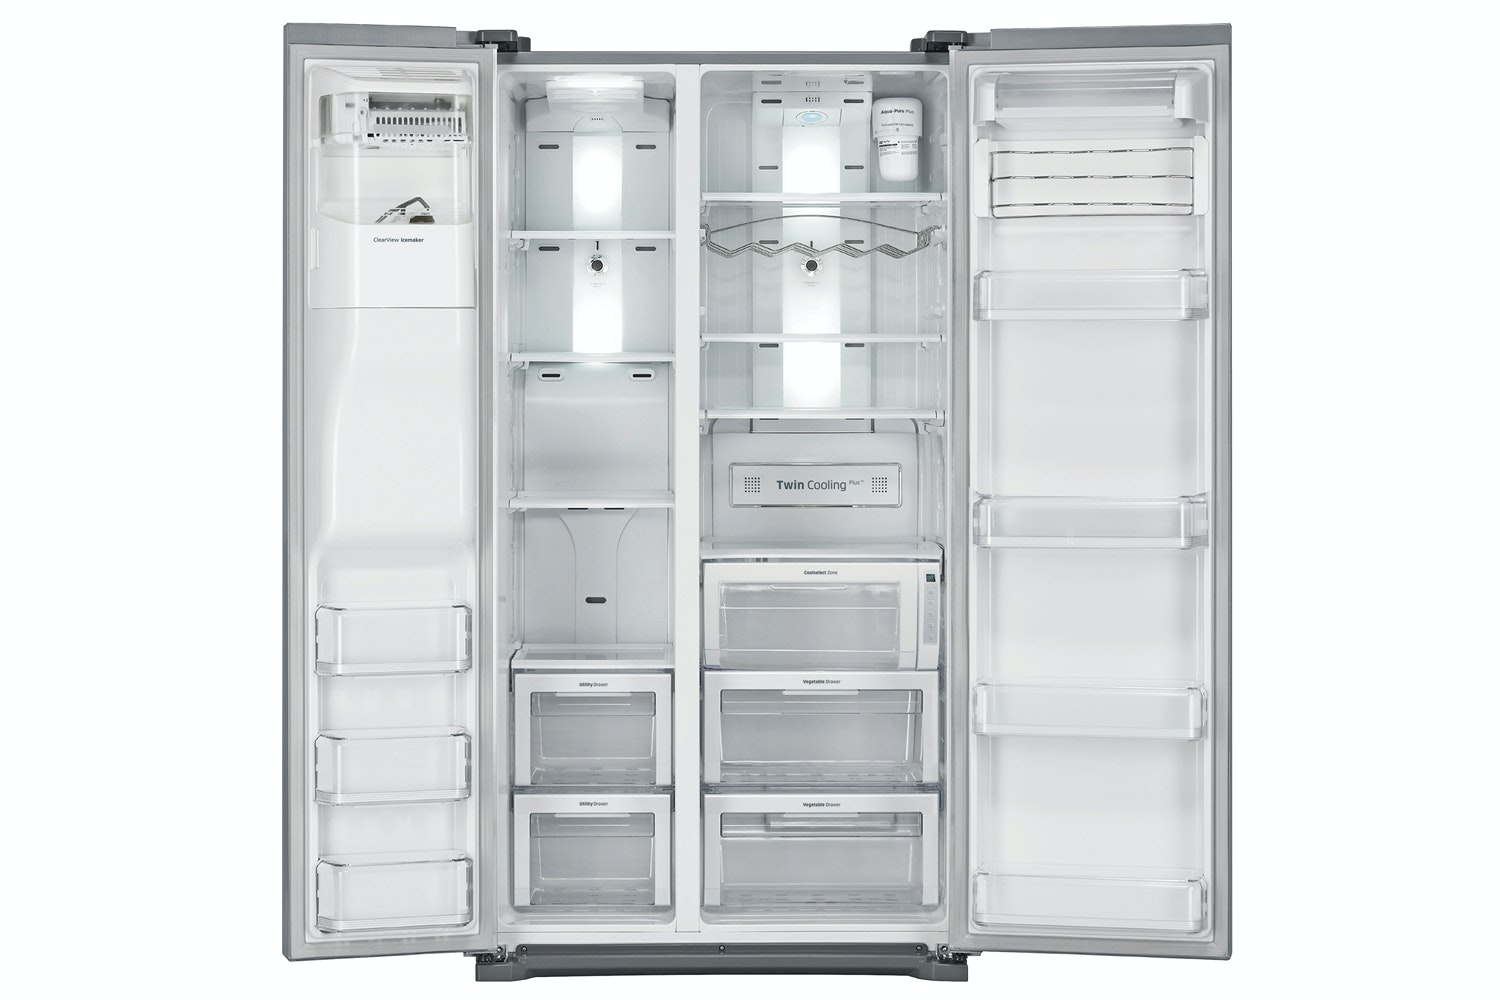 Samsung G-Series Side by Side Fridge Freezer | RSG5UUSL1/XEU